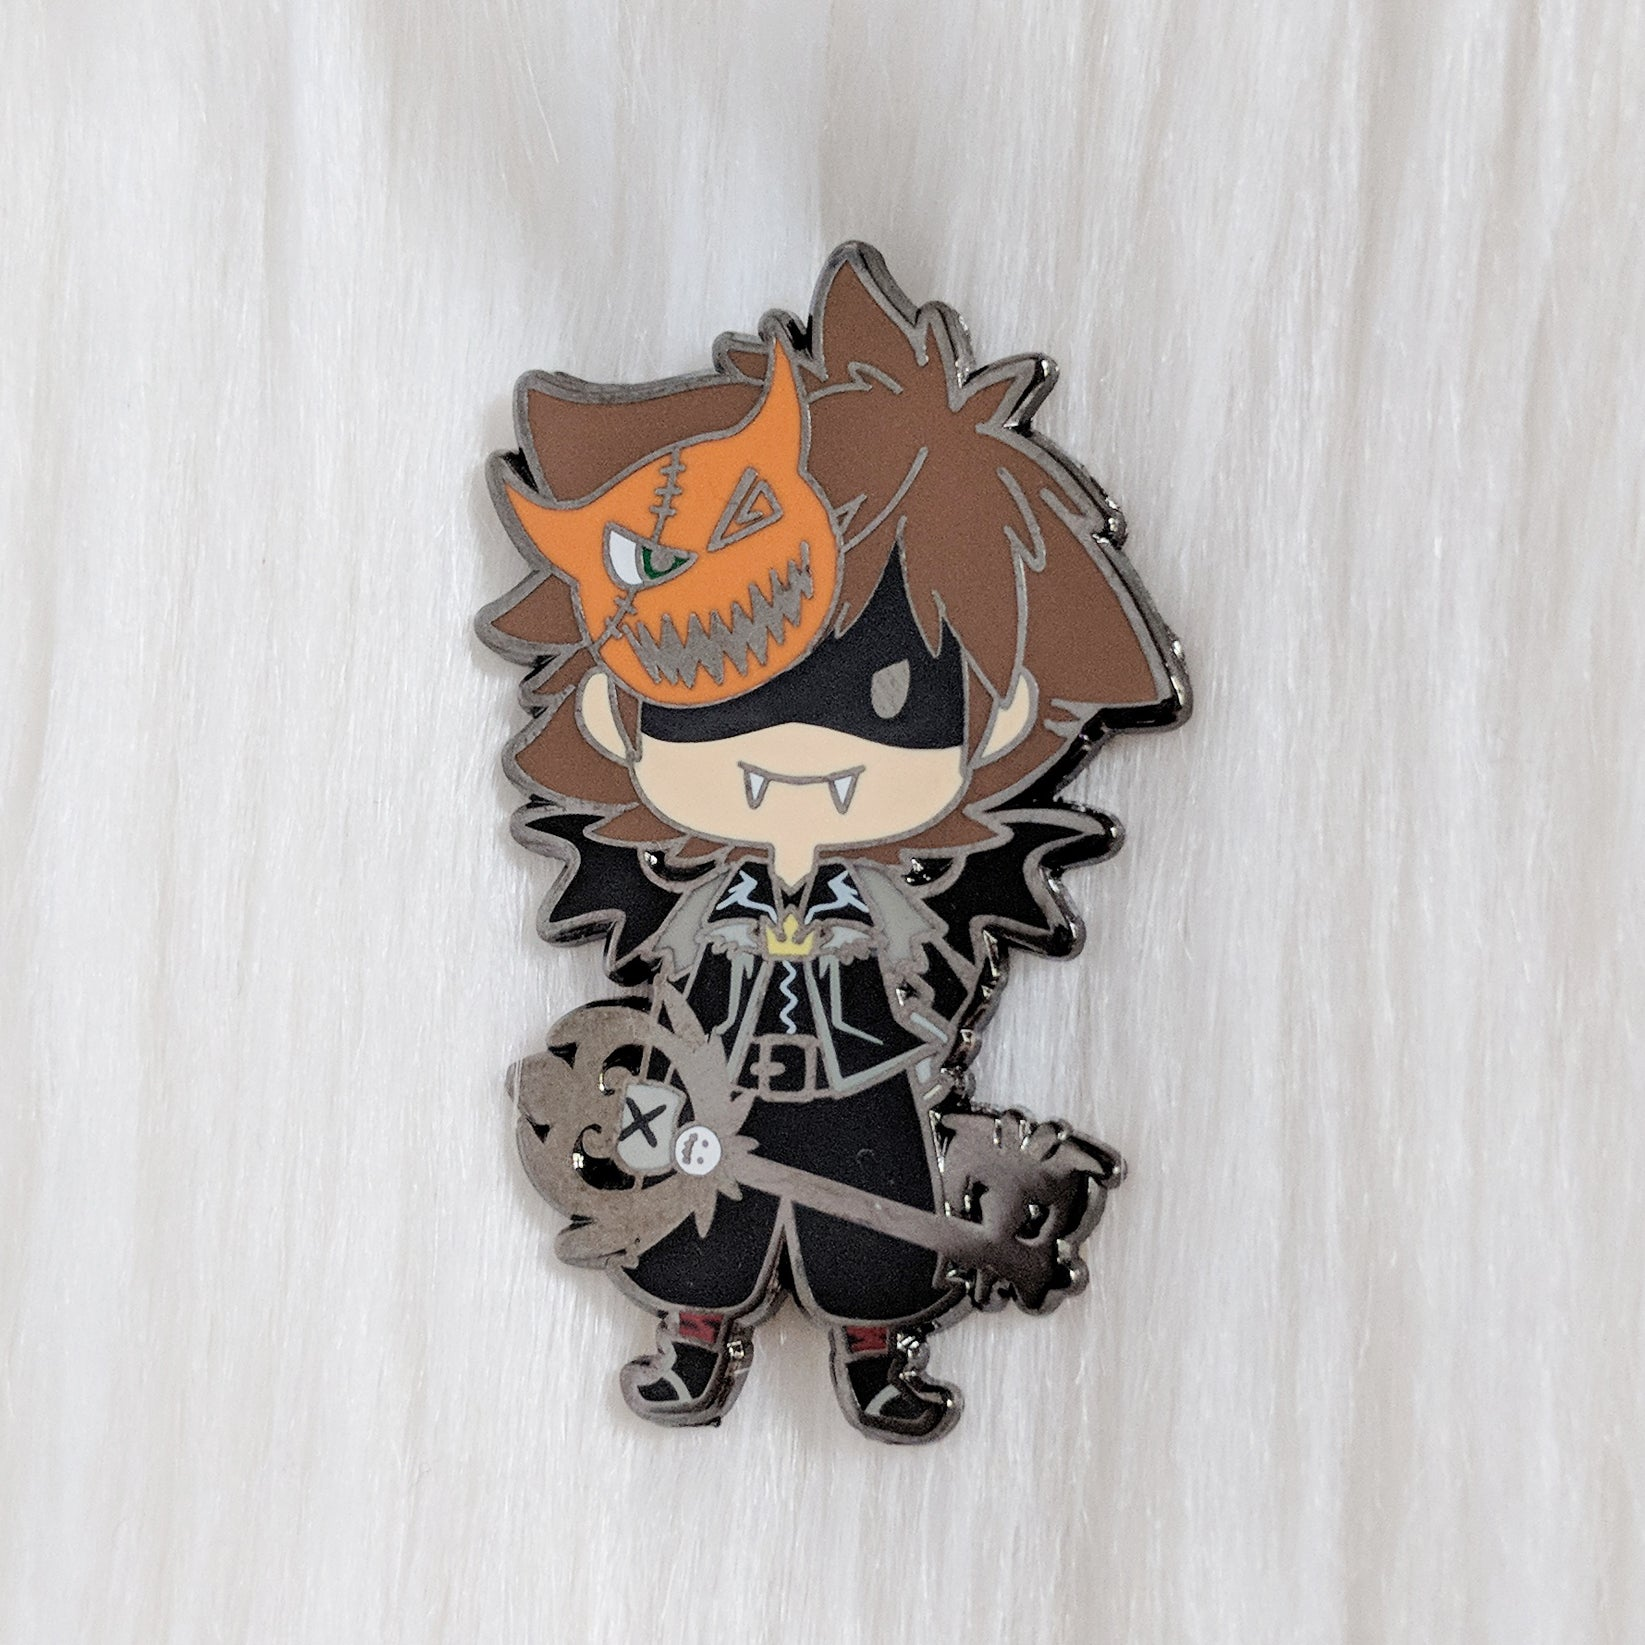 Halloweentown Sora - Enamel Pin